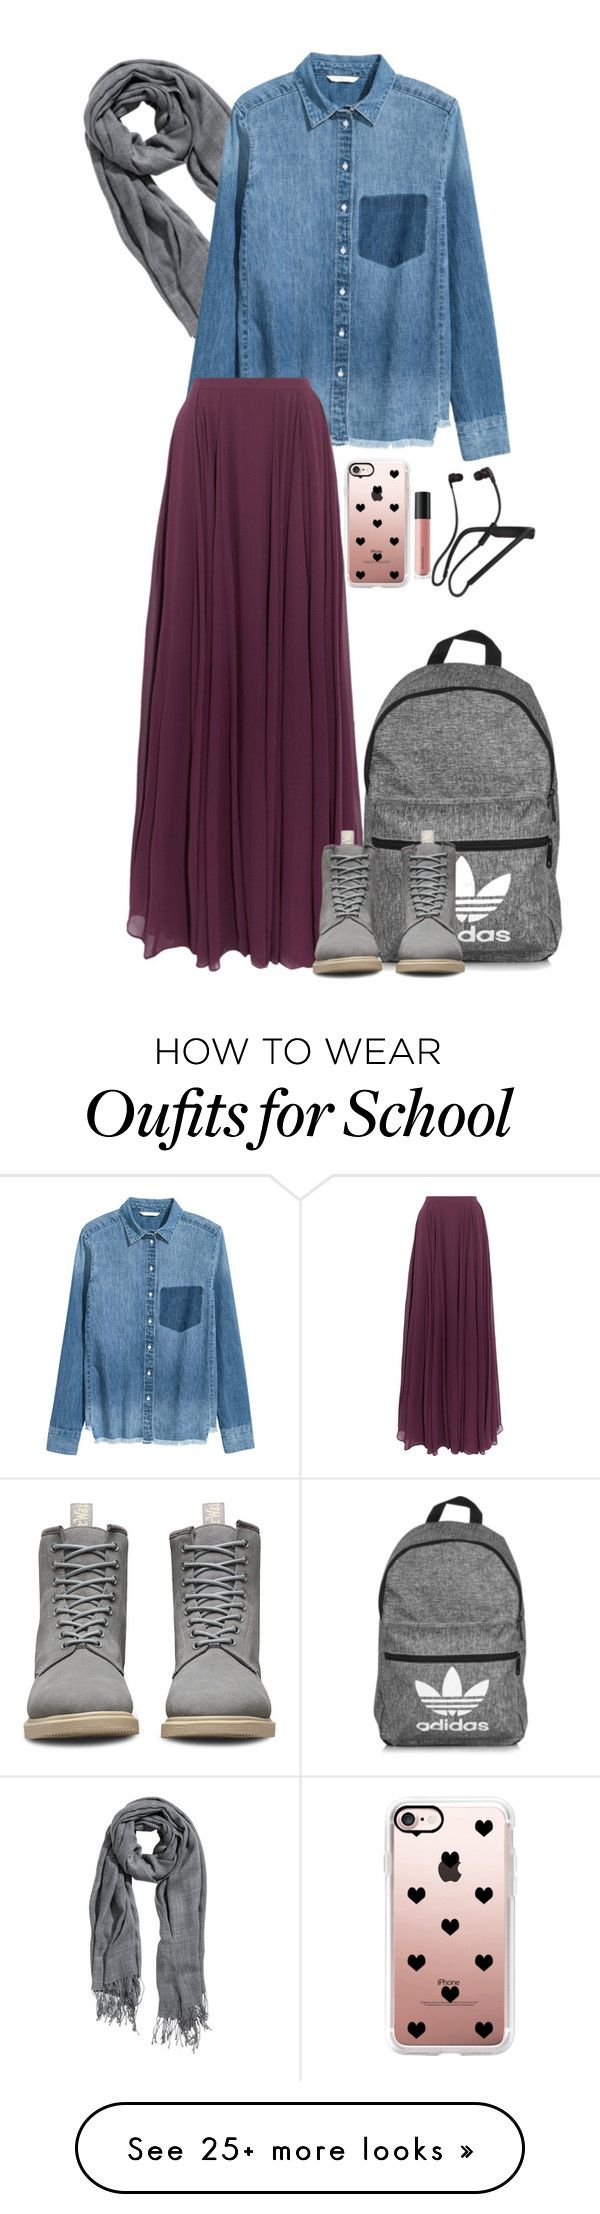 """back to school"" by hryoungstar15 on Polyvore featuring adidas, Halston Heritage, Dr. Martens, Casetify, Bare Escentuals and Skullcandy"